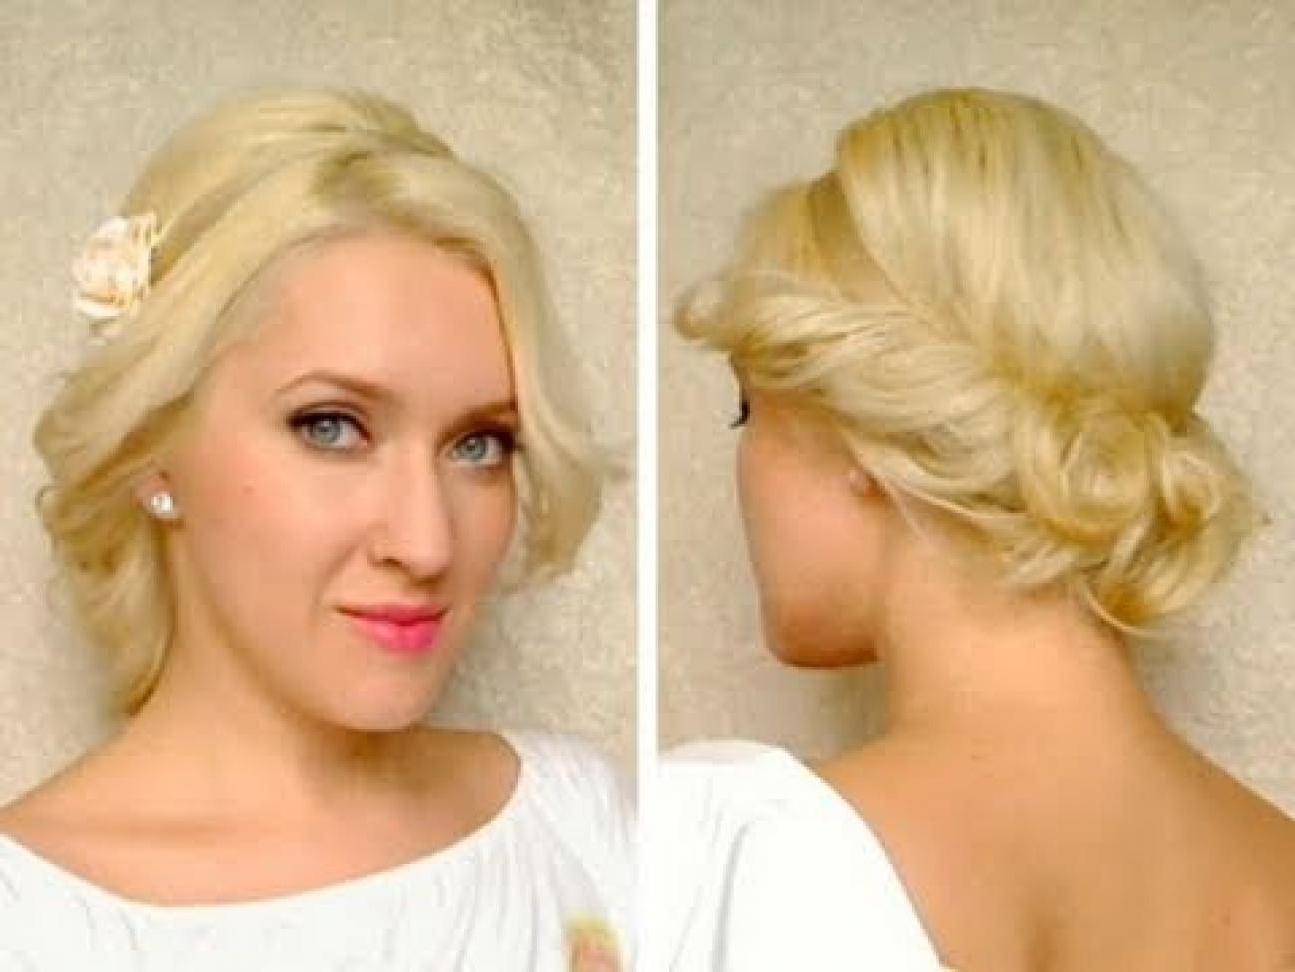 Medium Hair Length Cute Easy Curly Updo Hairstyle For Long | Medium In Curly Updos For Medium Hair (View 11 of 15)